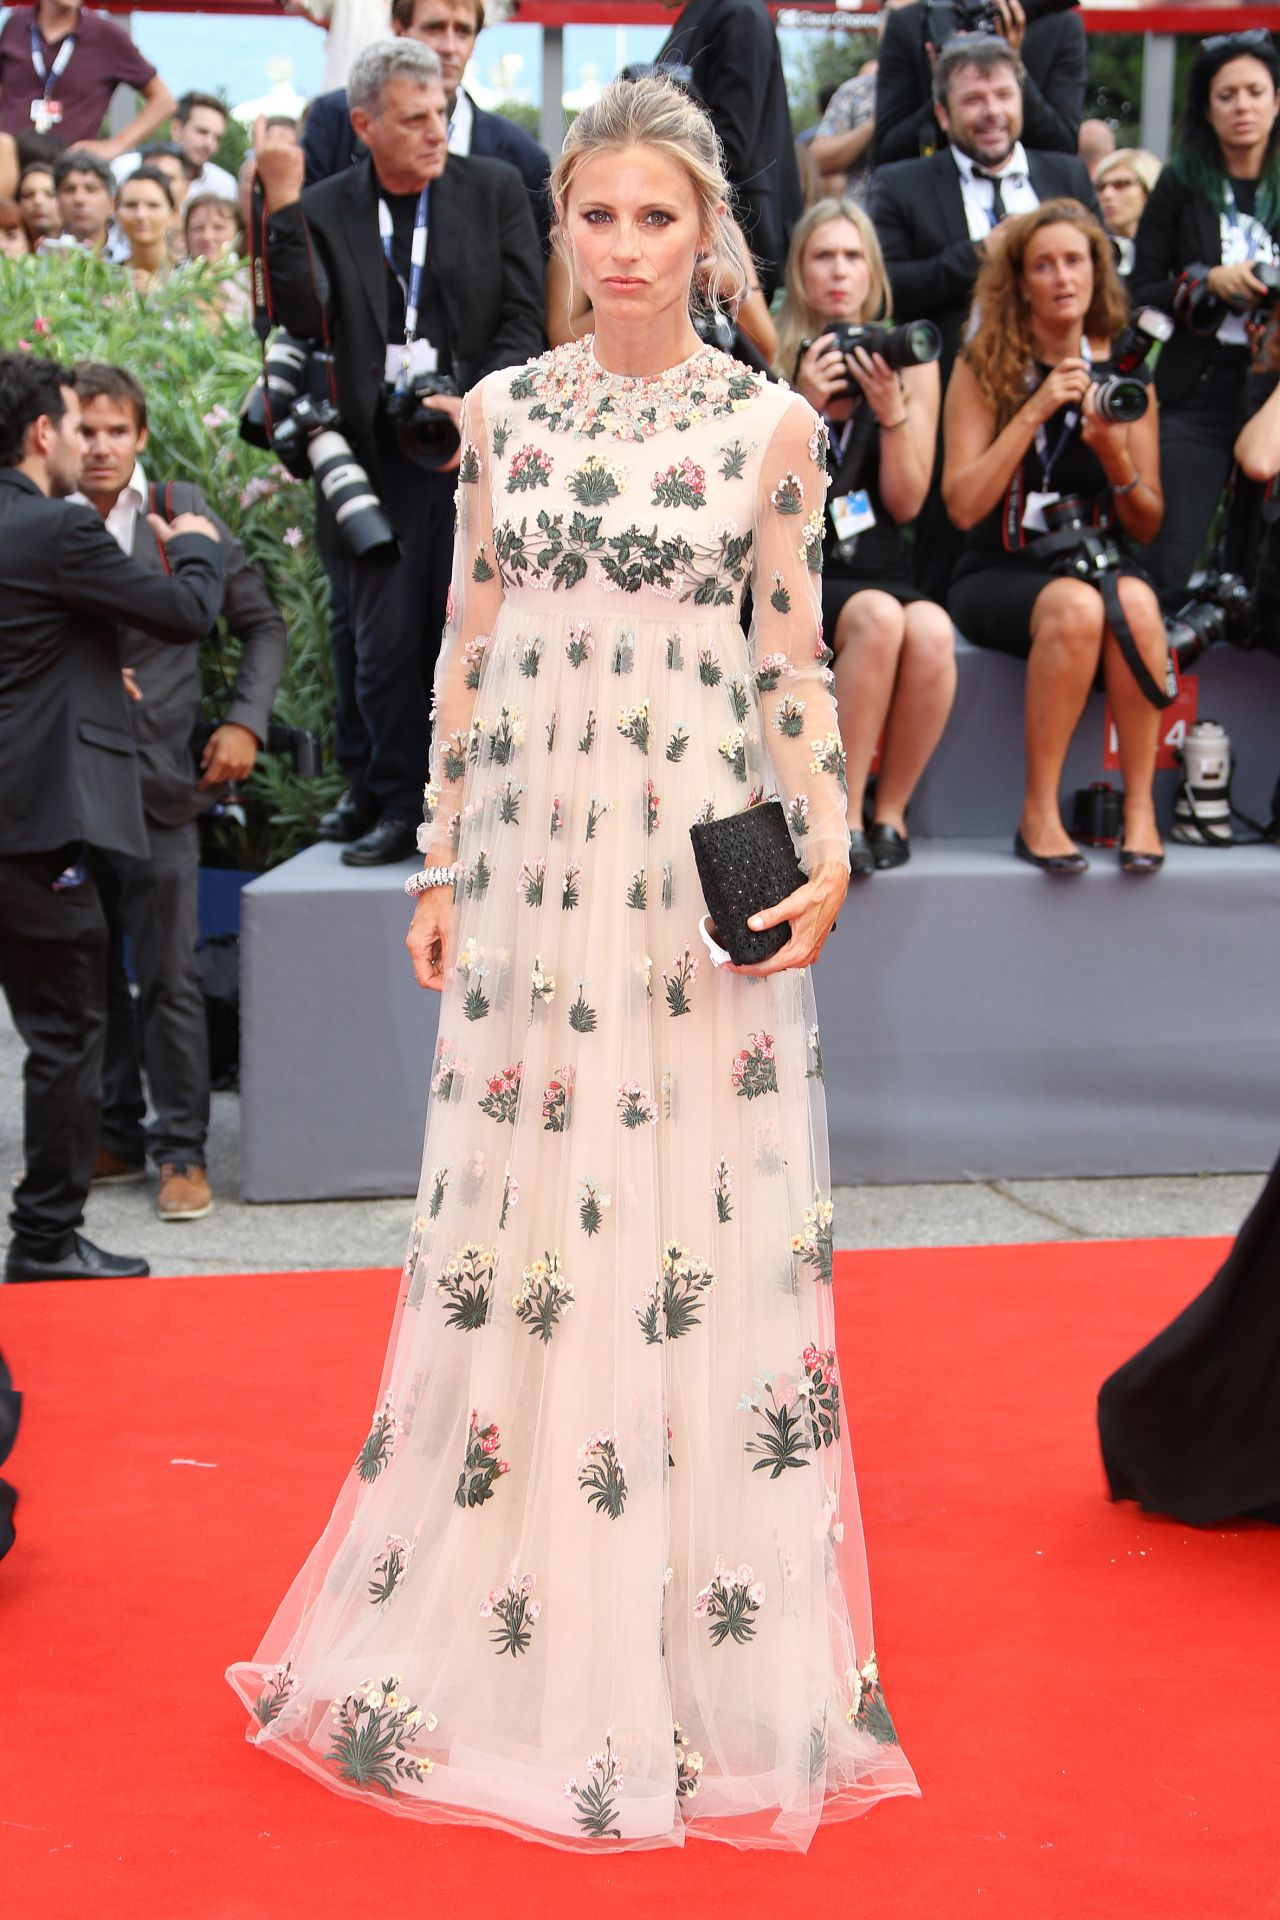 laura-bailey-opening-ceremony-and-premiere-of-everest-2015-venice-film-festival_1